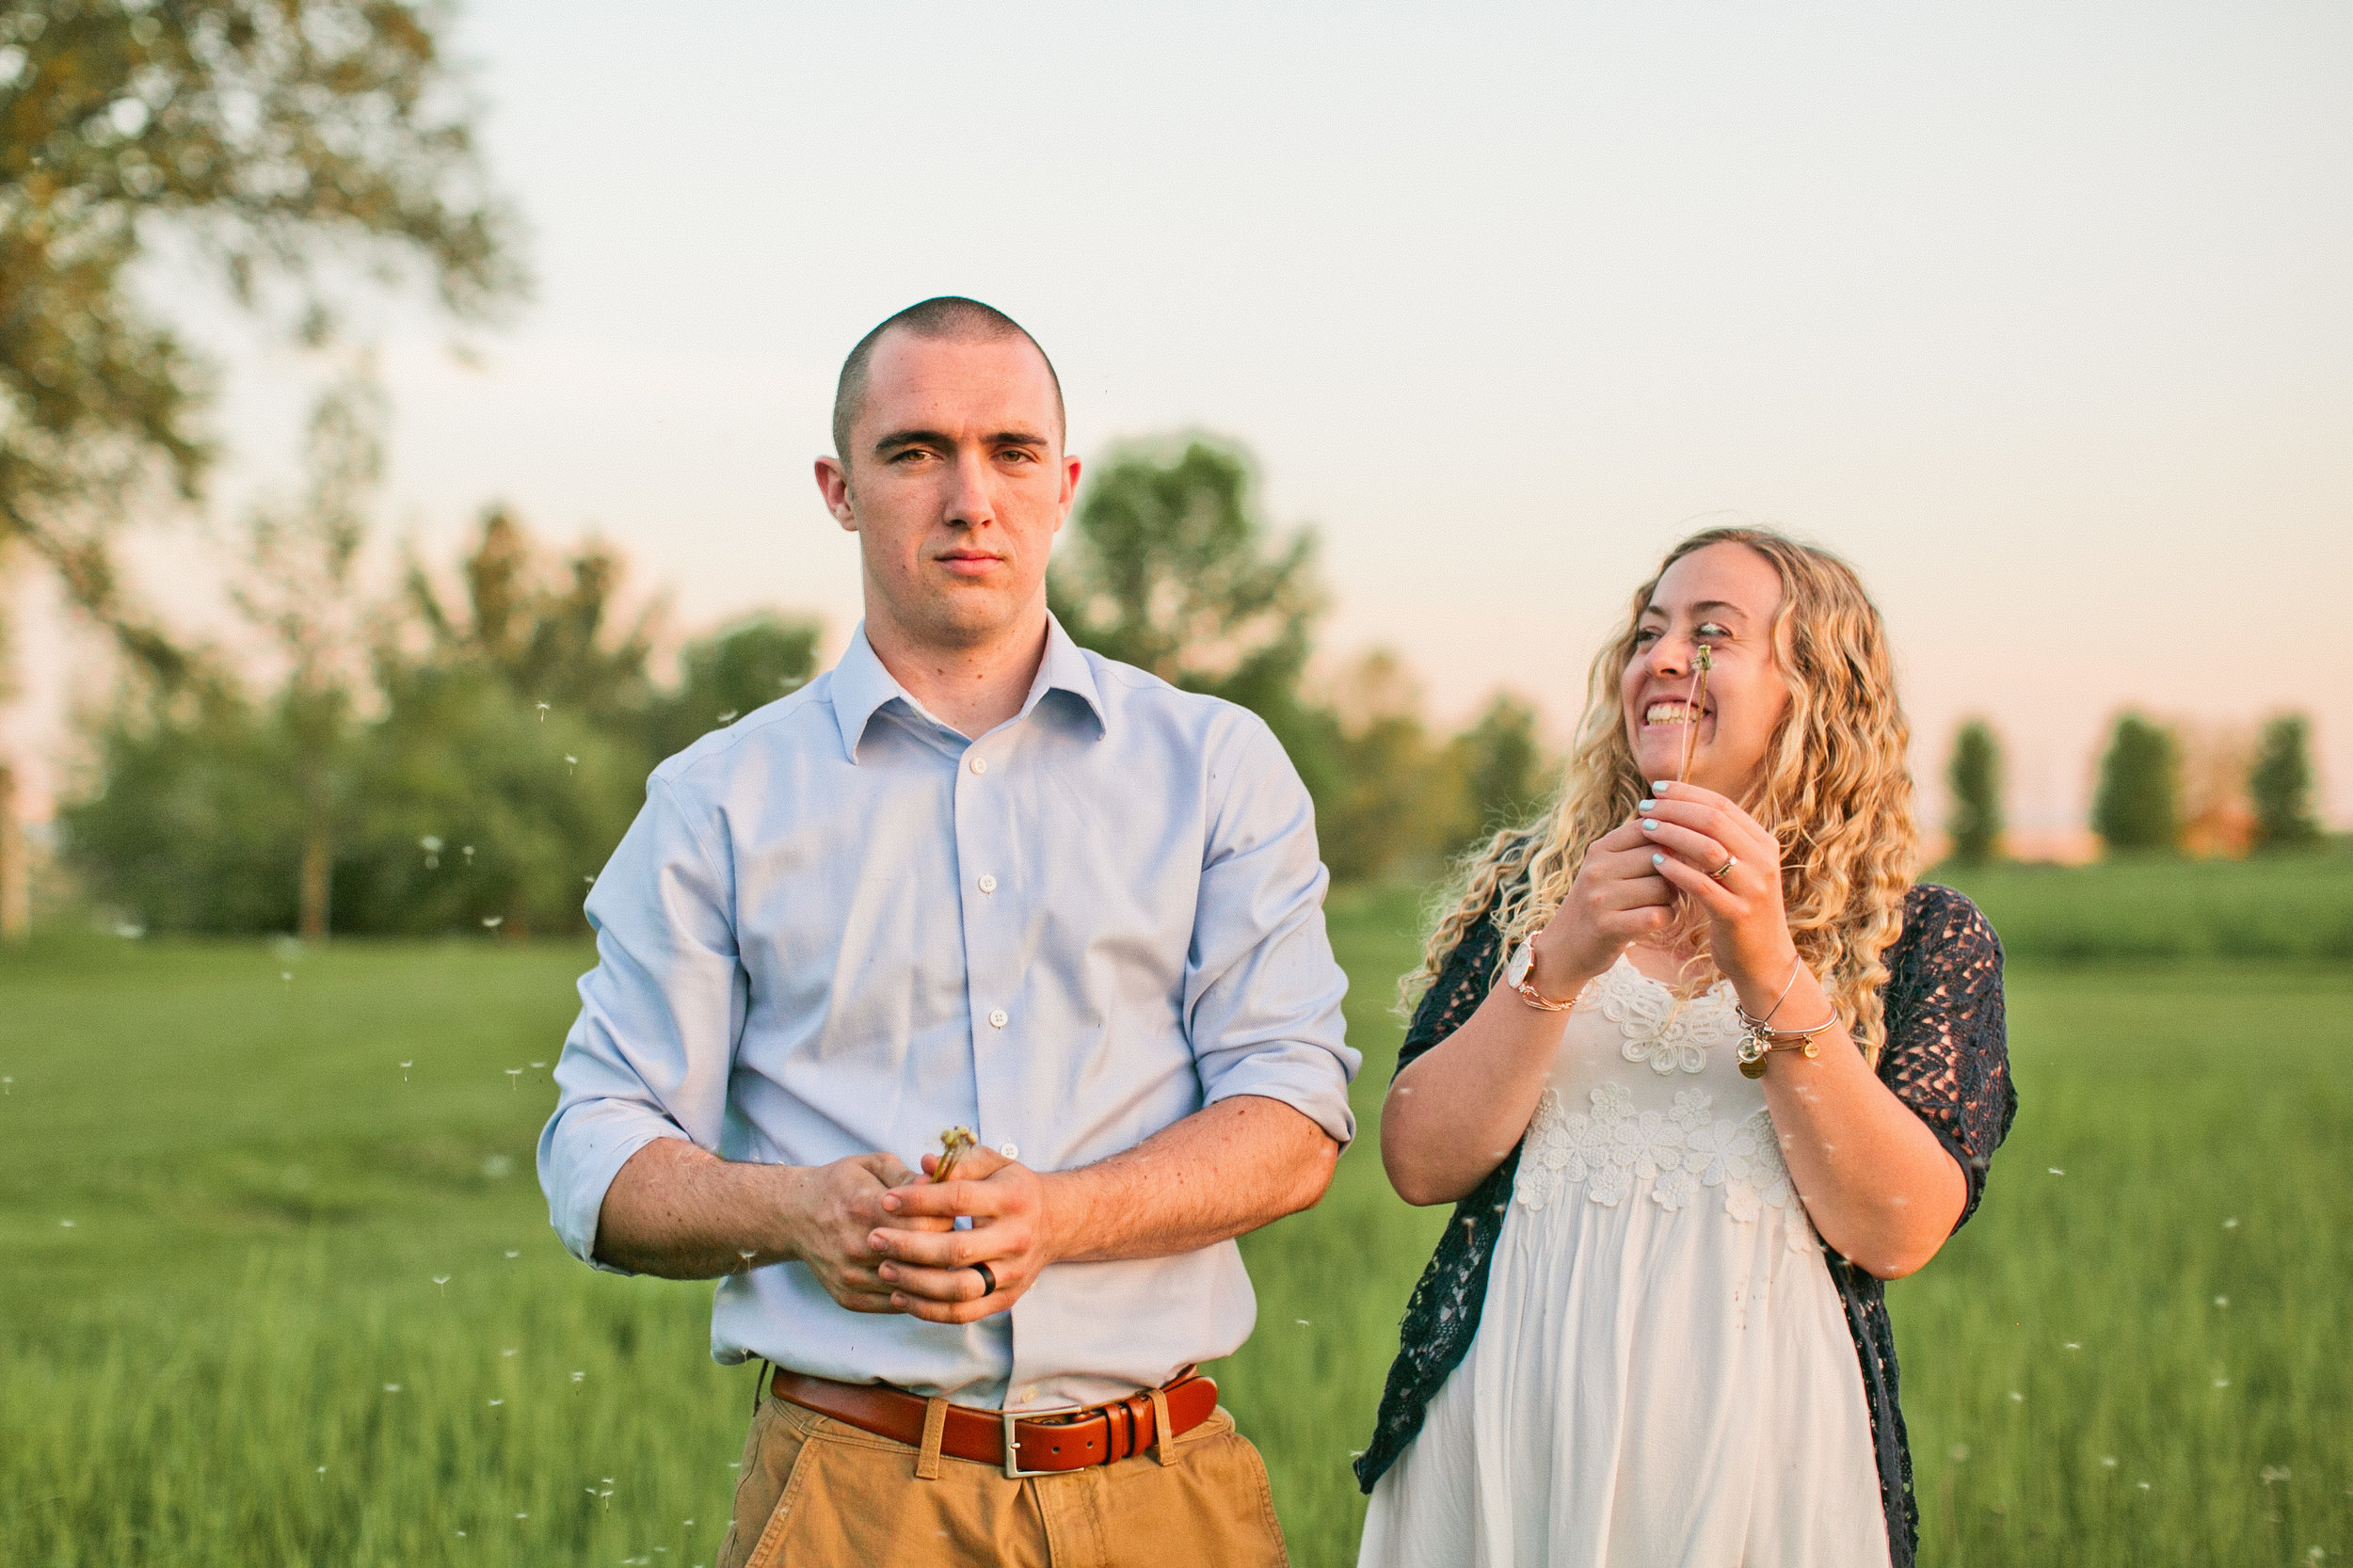 couple blowing dandelions in field engagement photos saylorville iowa